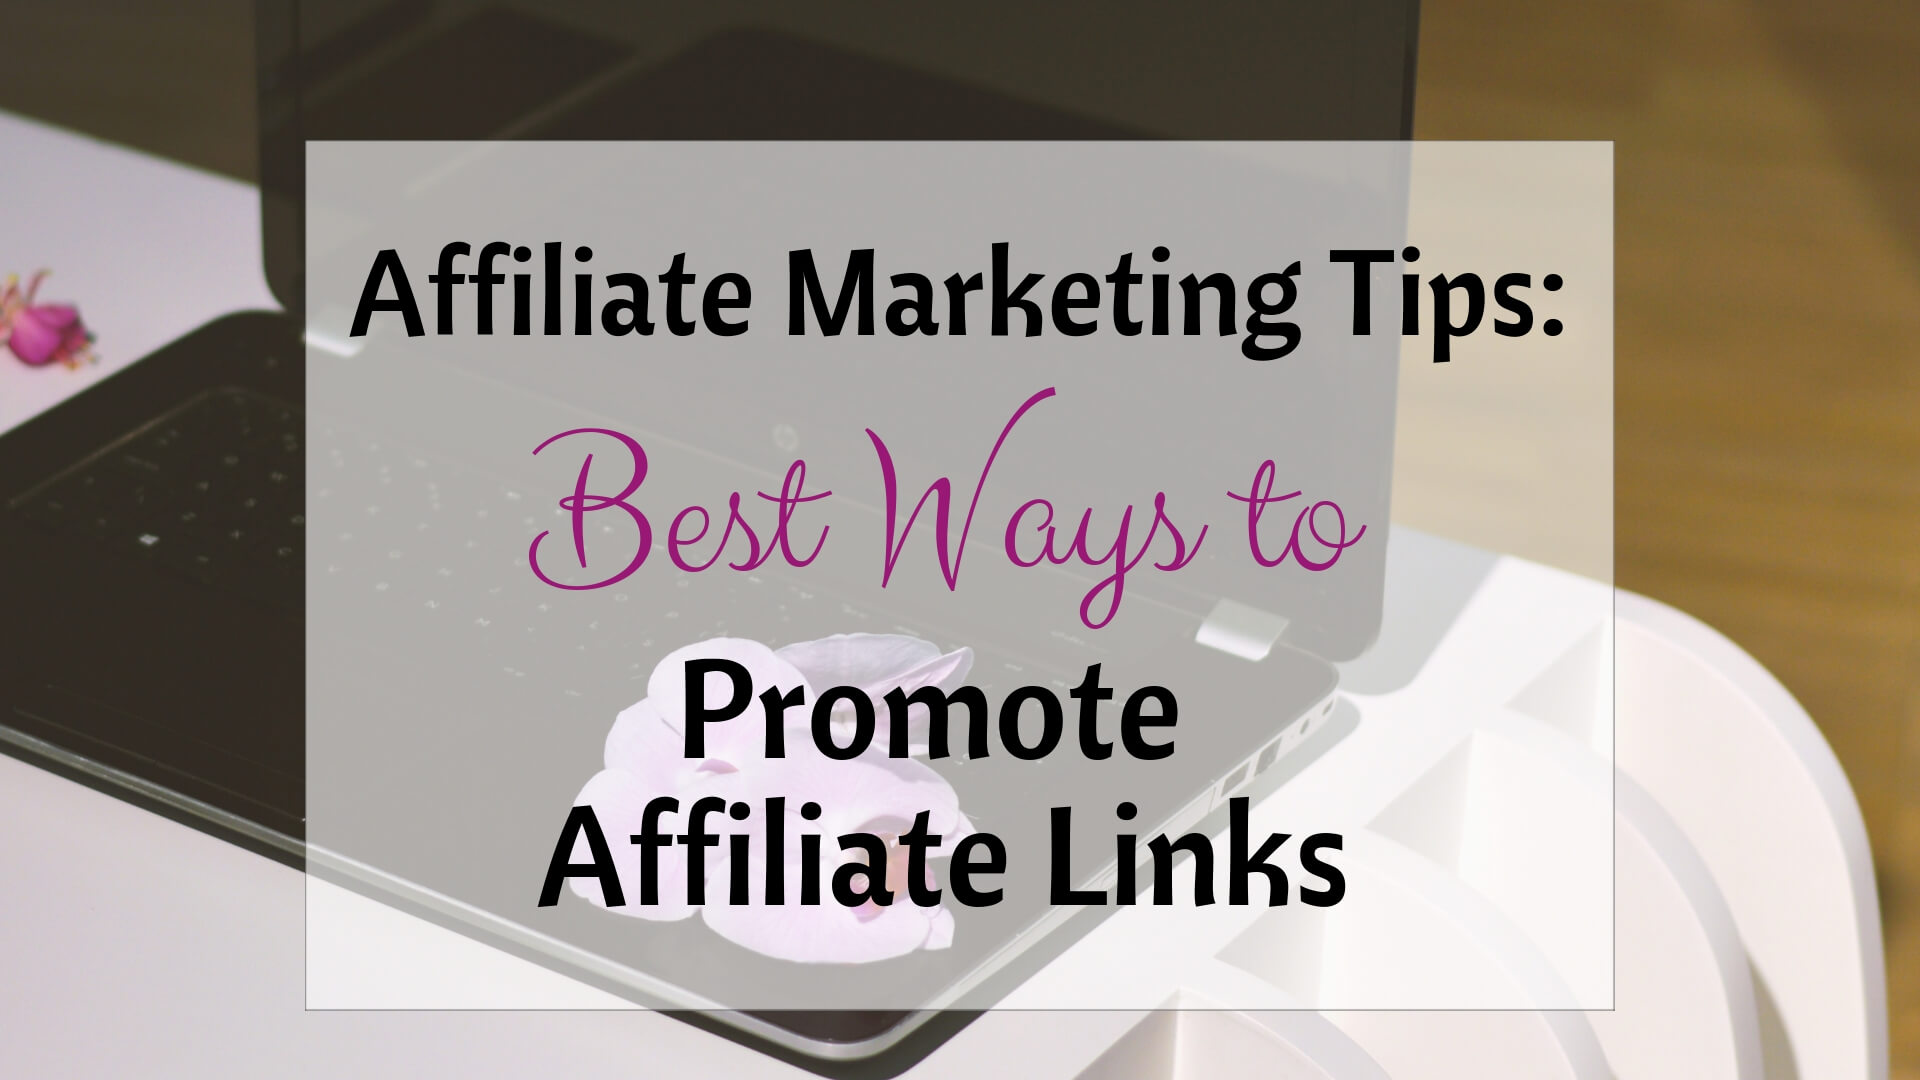 Affiliate marketing tips - best ways to promote affiliate links